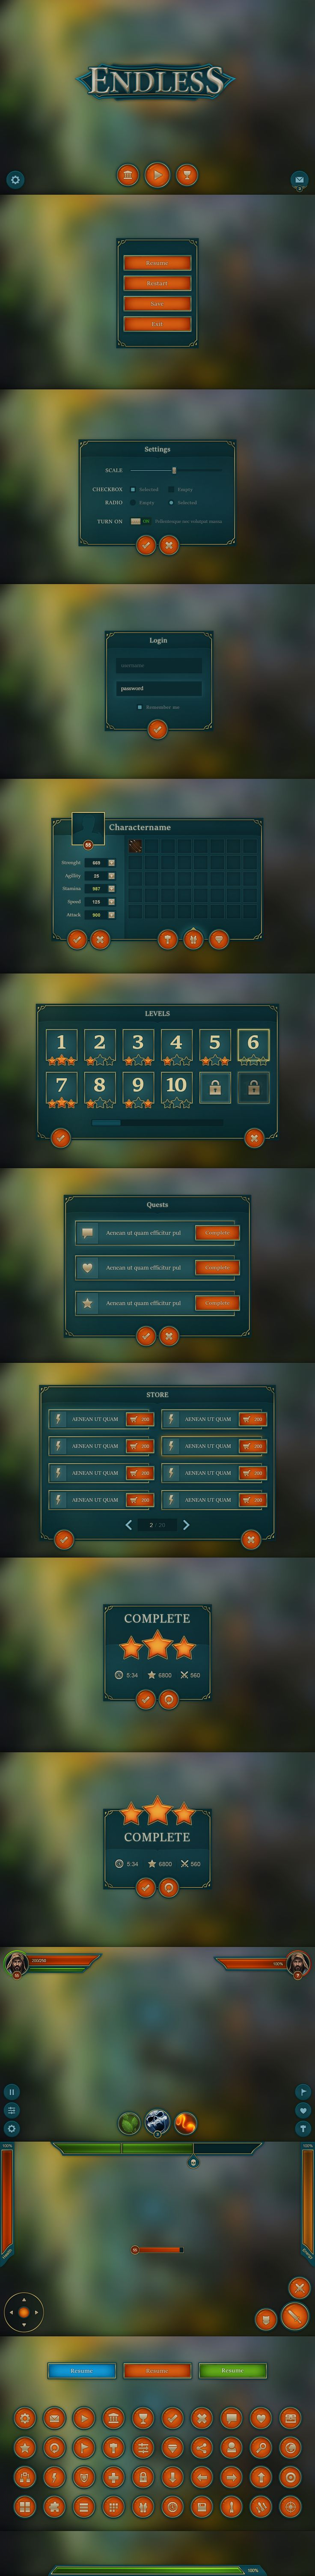 Endless Mobile UI by Evil-S on DeviantArt